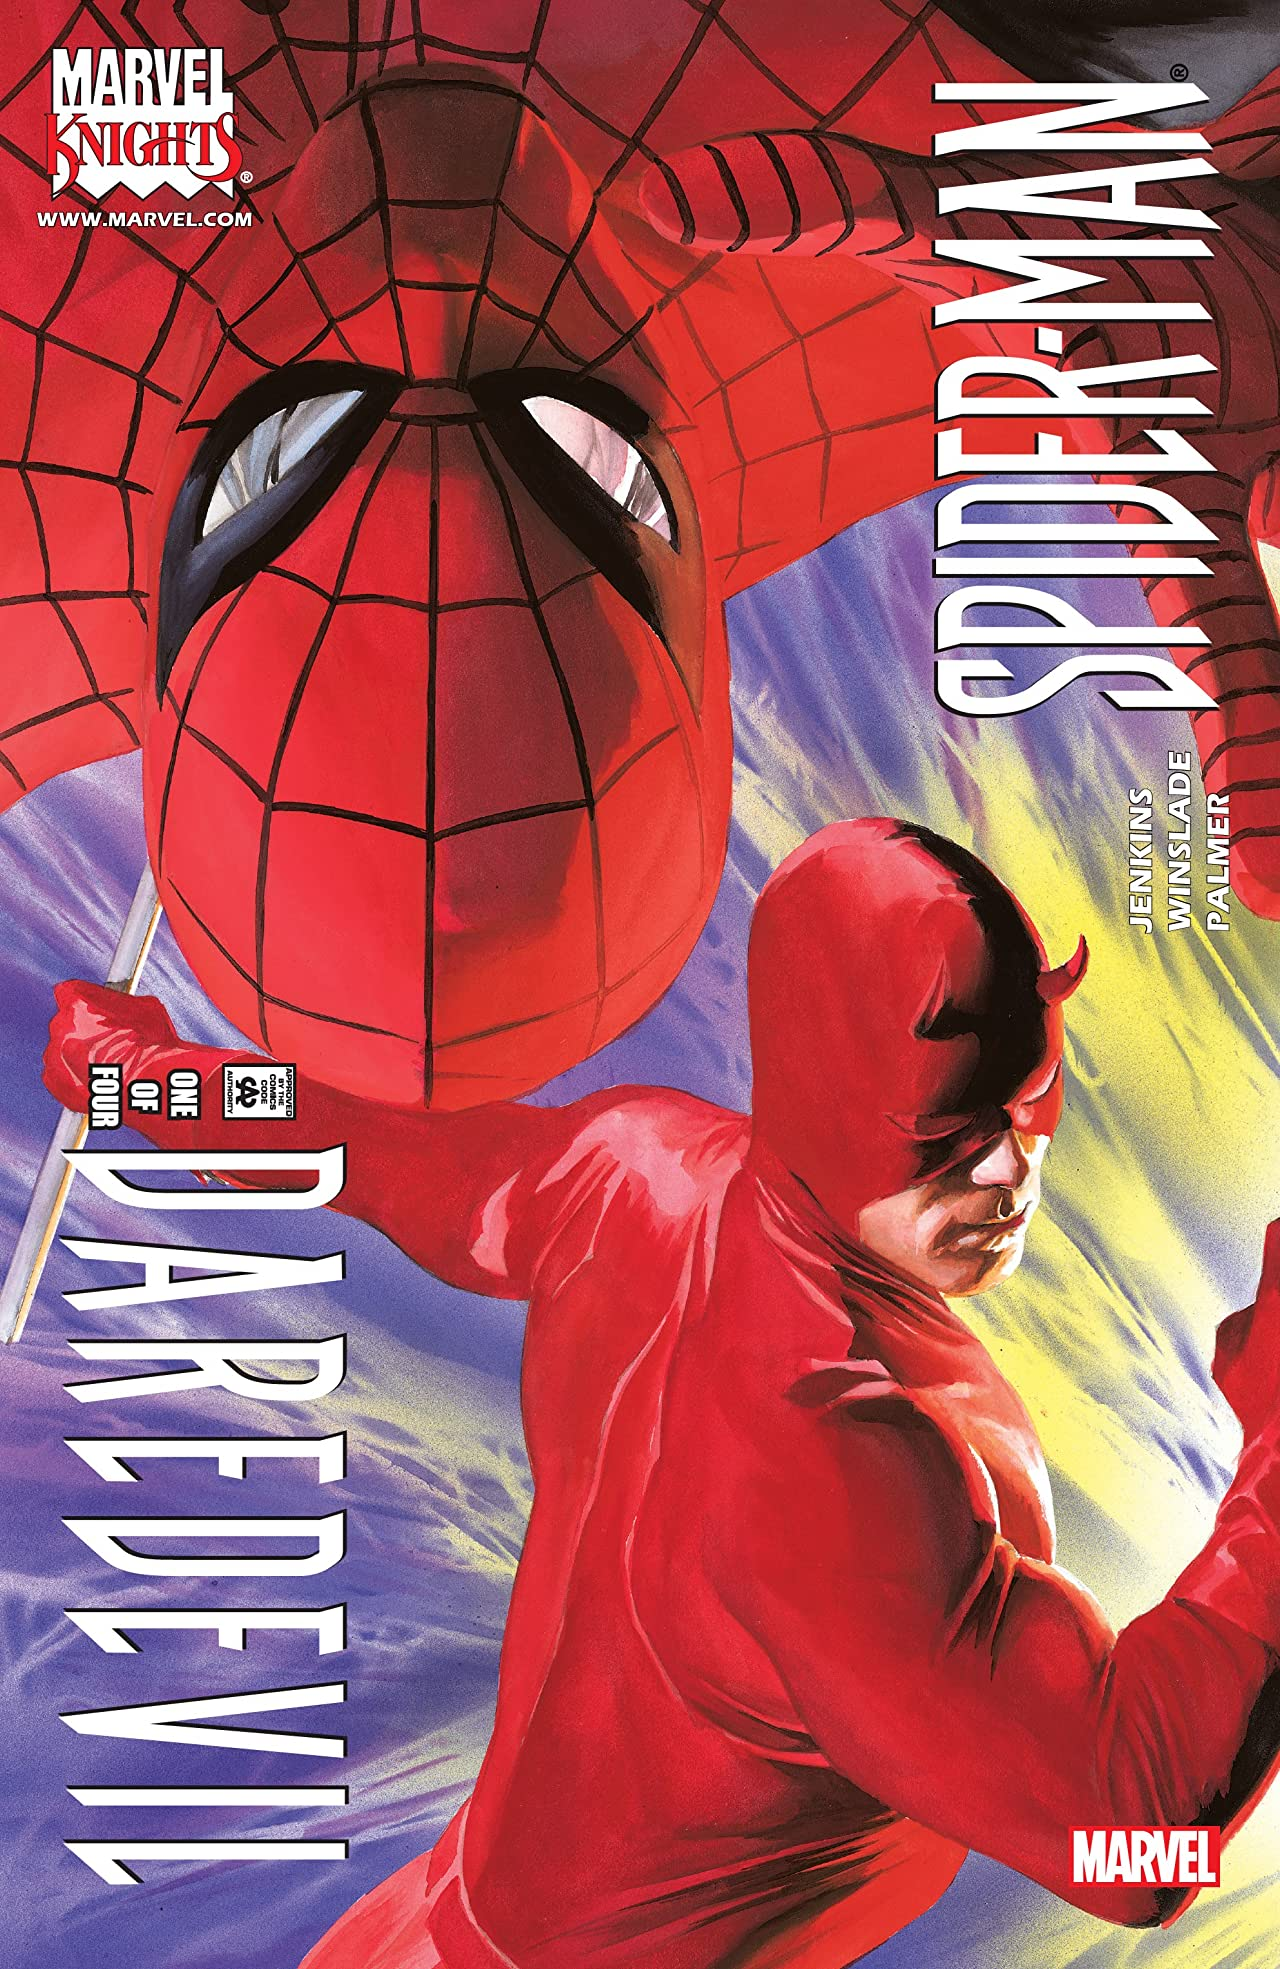 Daredevil/Spider-Man (2001) #1 (of 4)